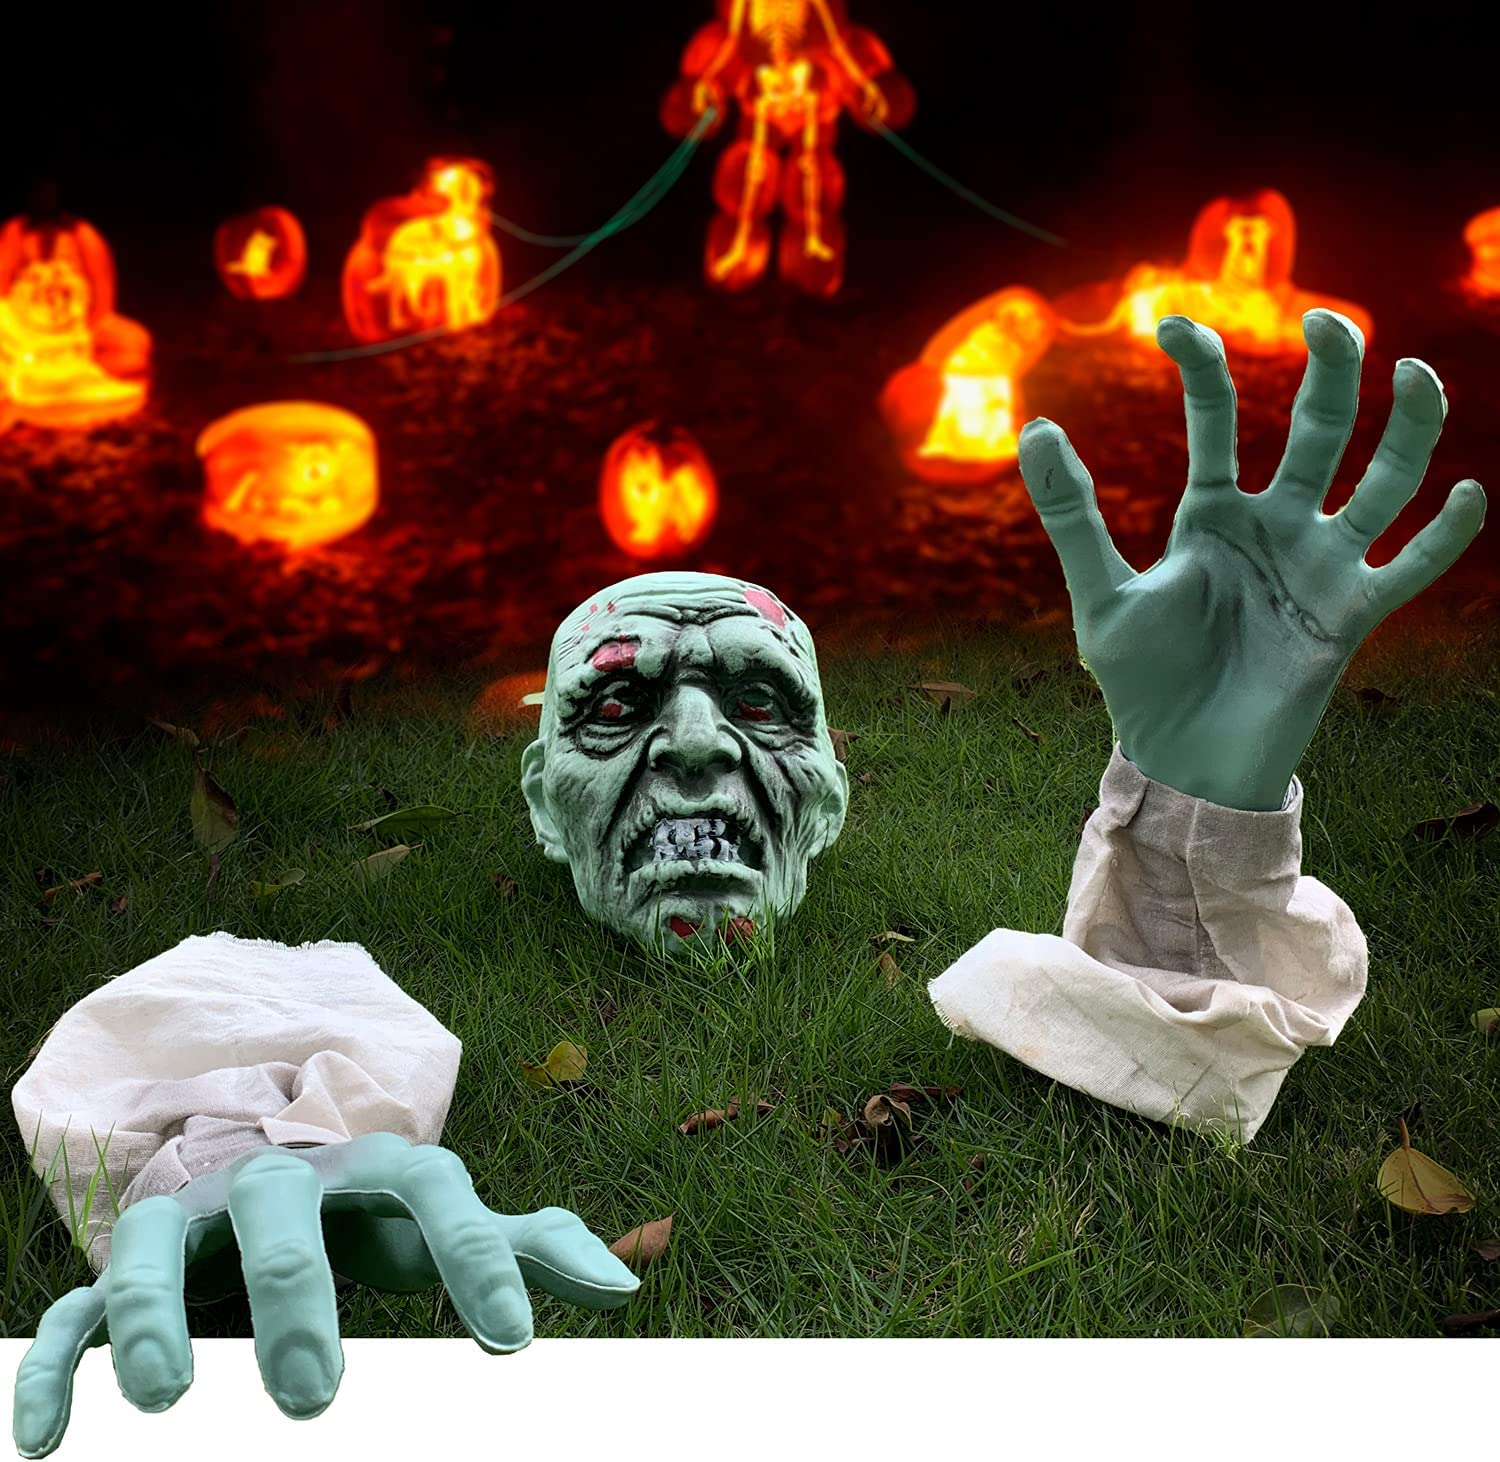 YaNovate Halloween Decorations Scary Deluxe Zombie and Face Japan's largest assortment with Arms